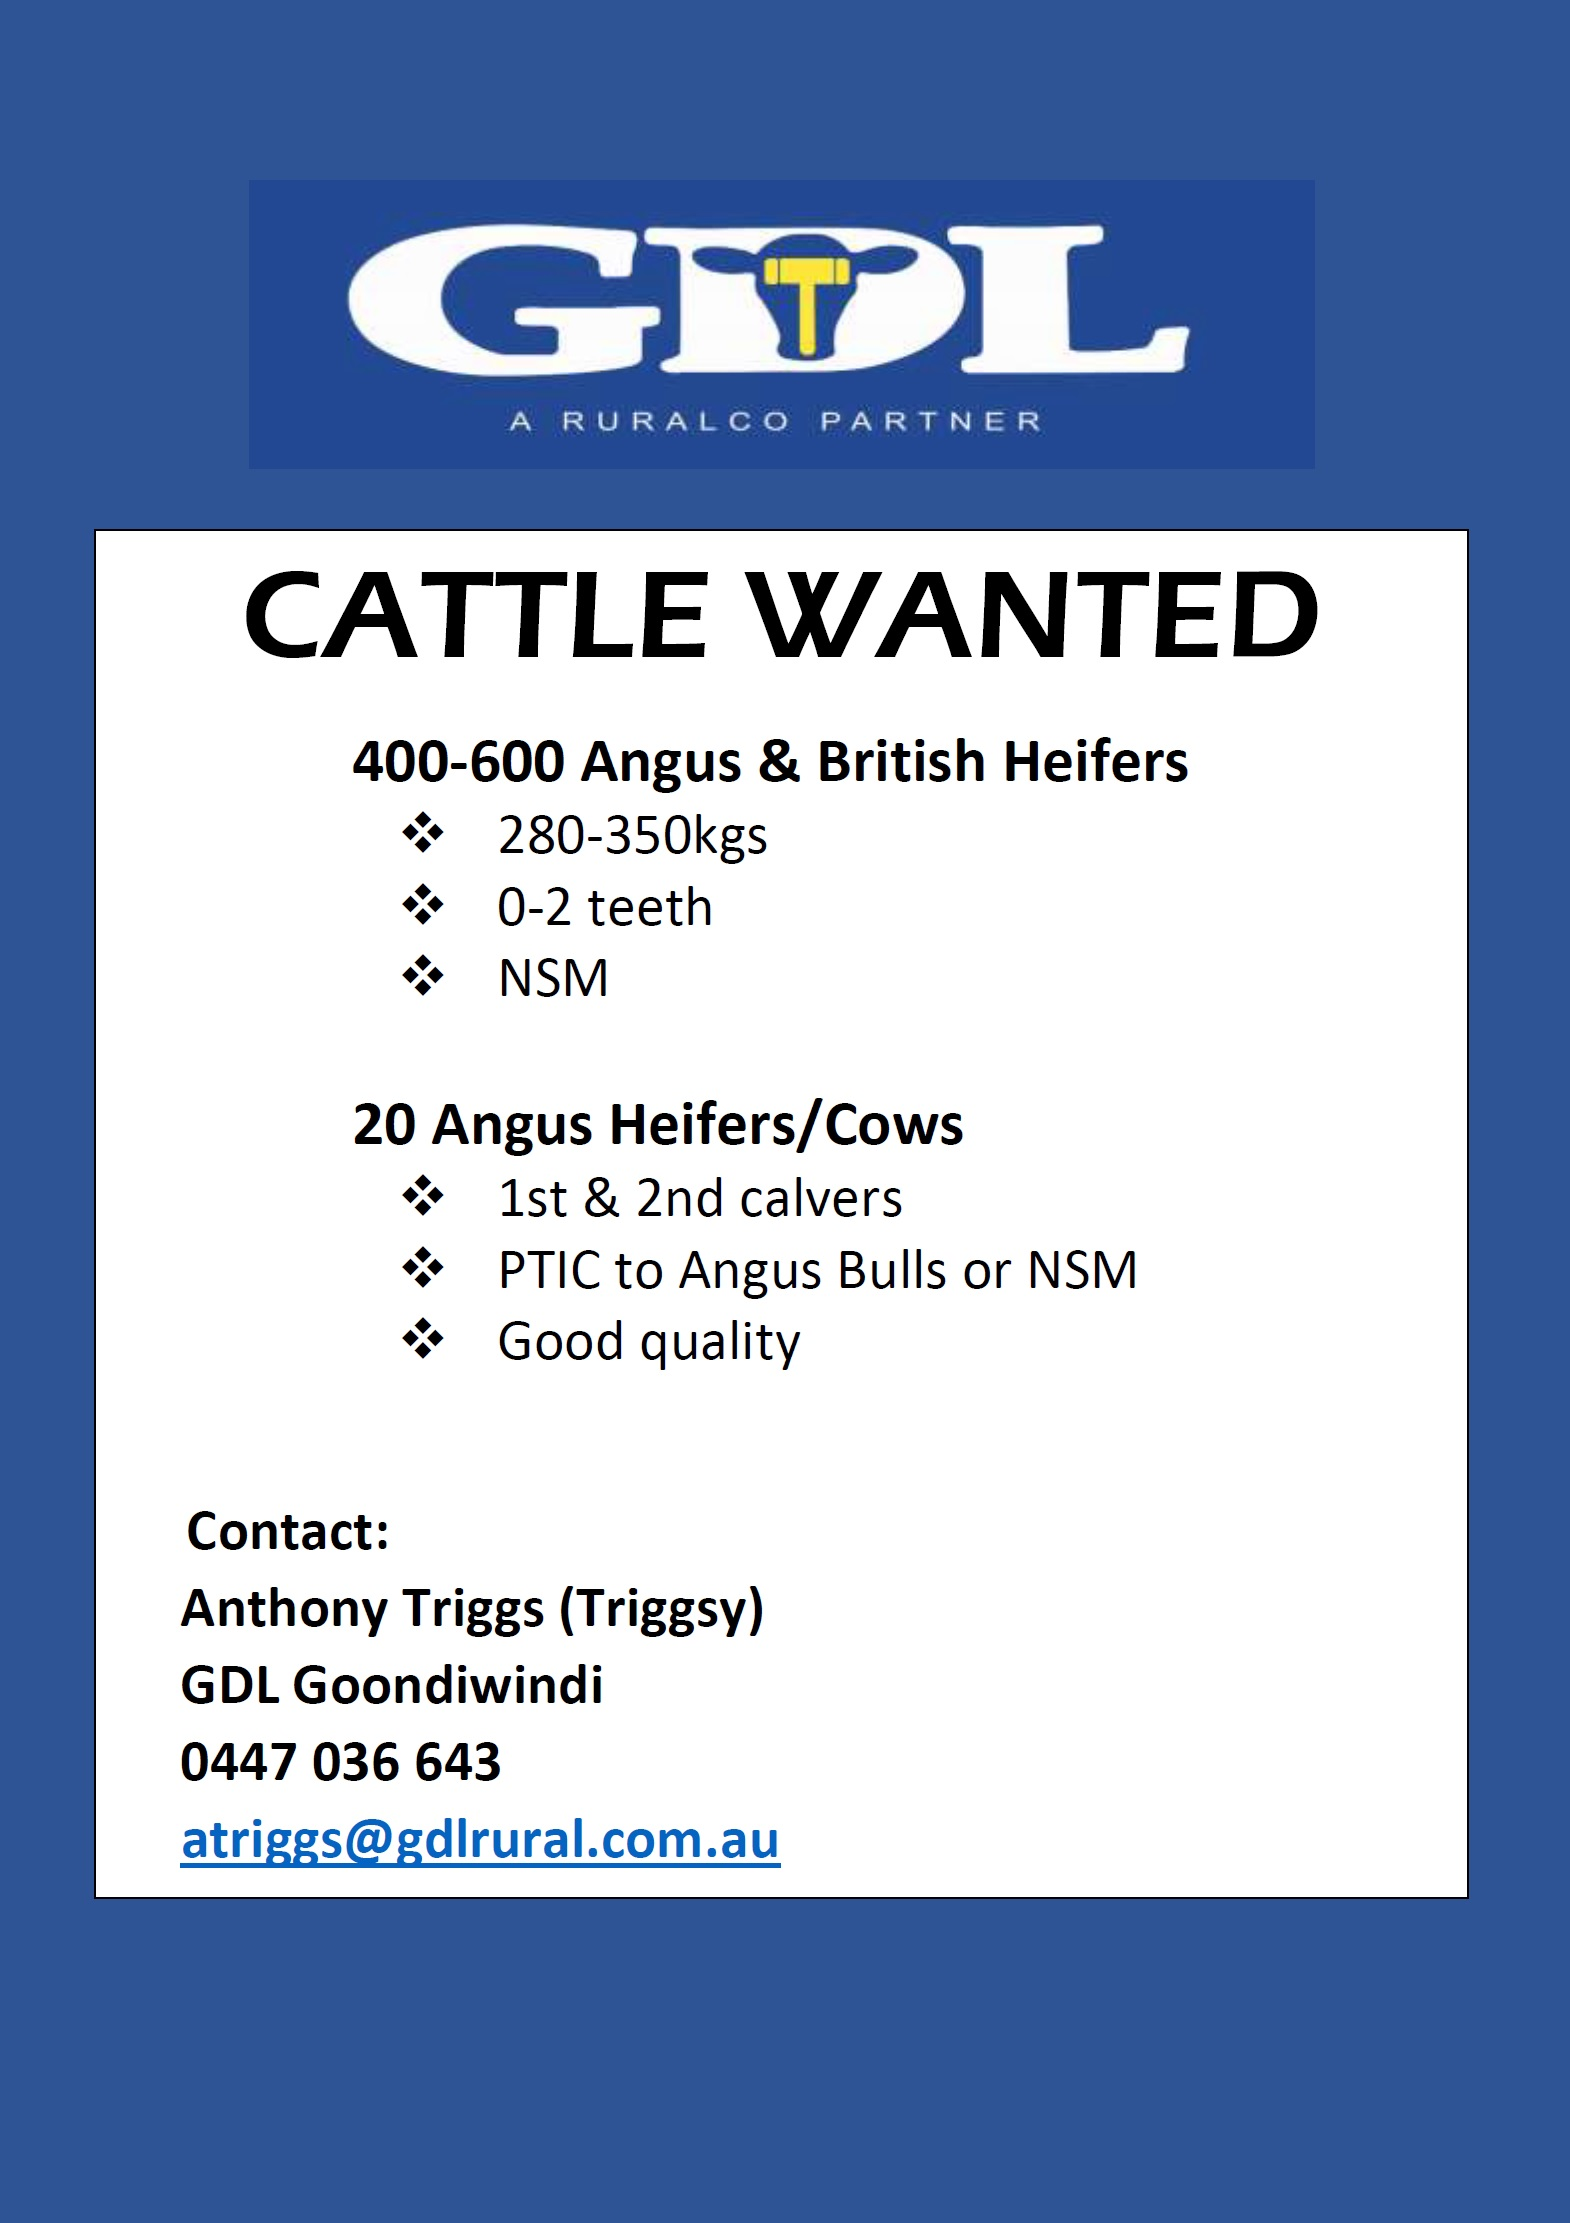 CATTLE WANTED